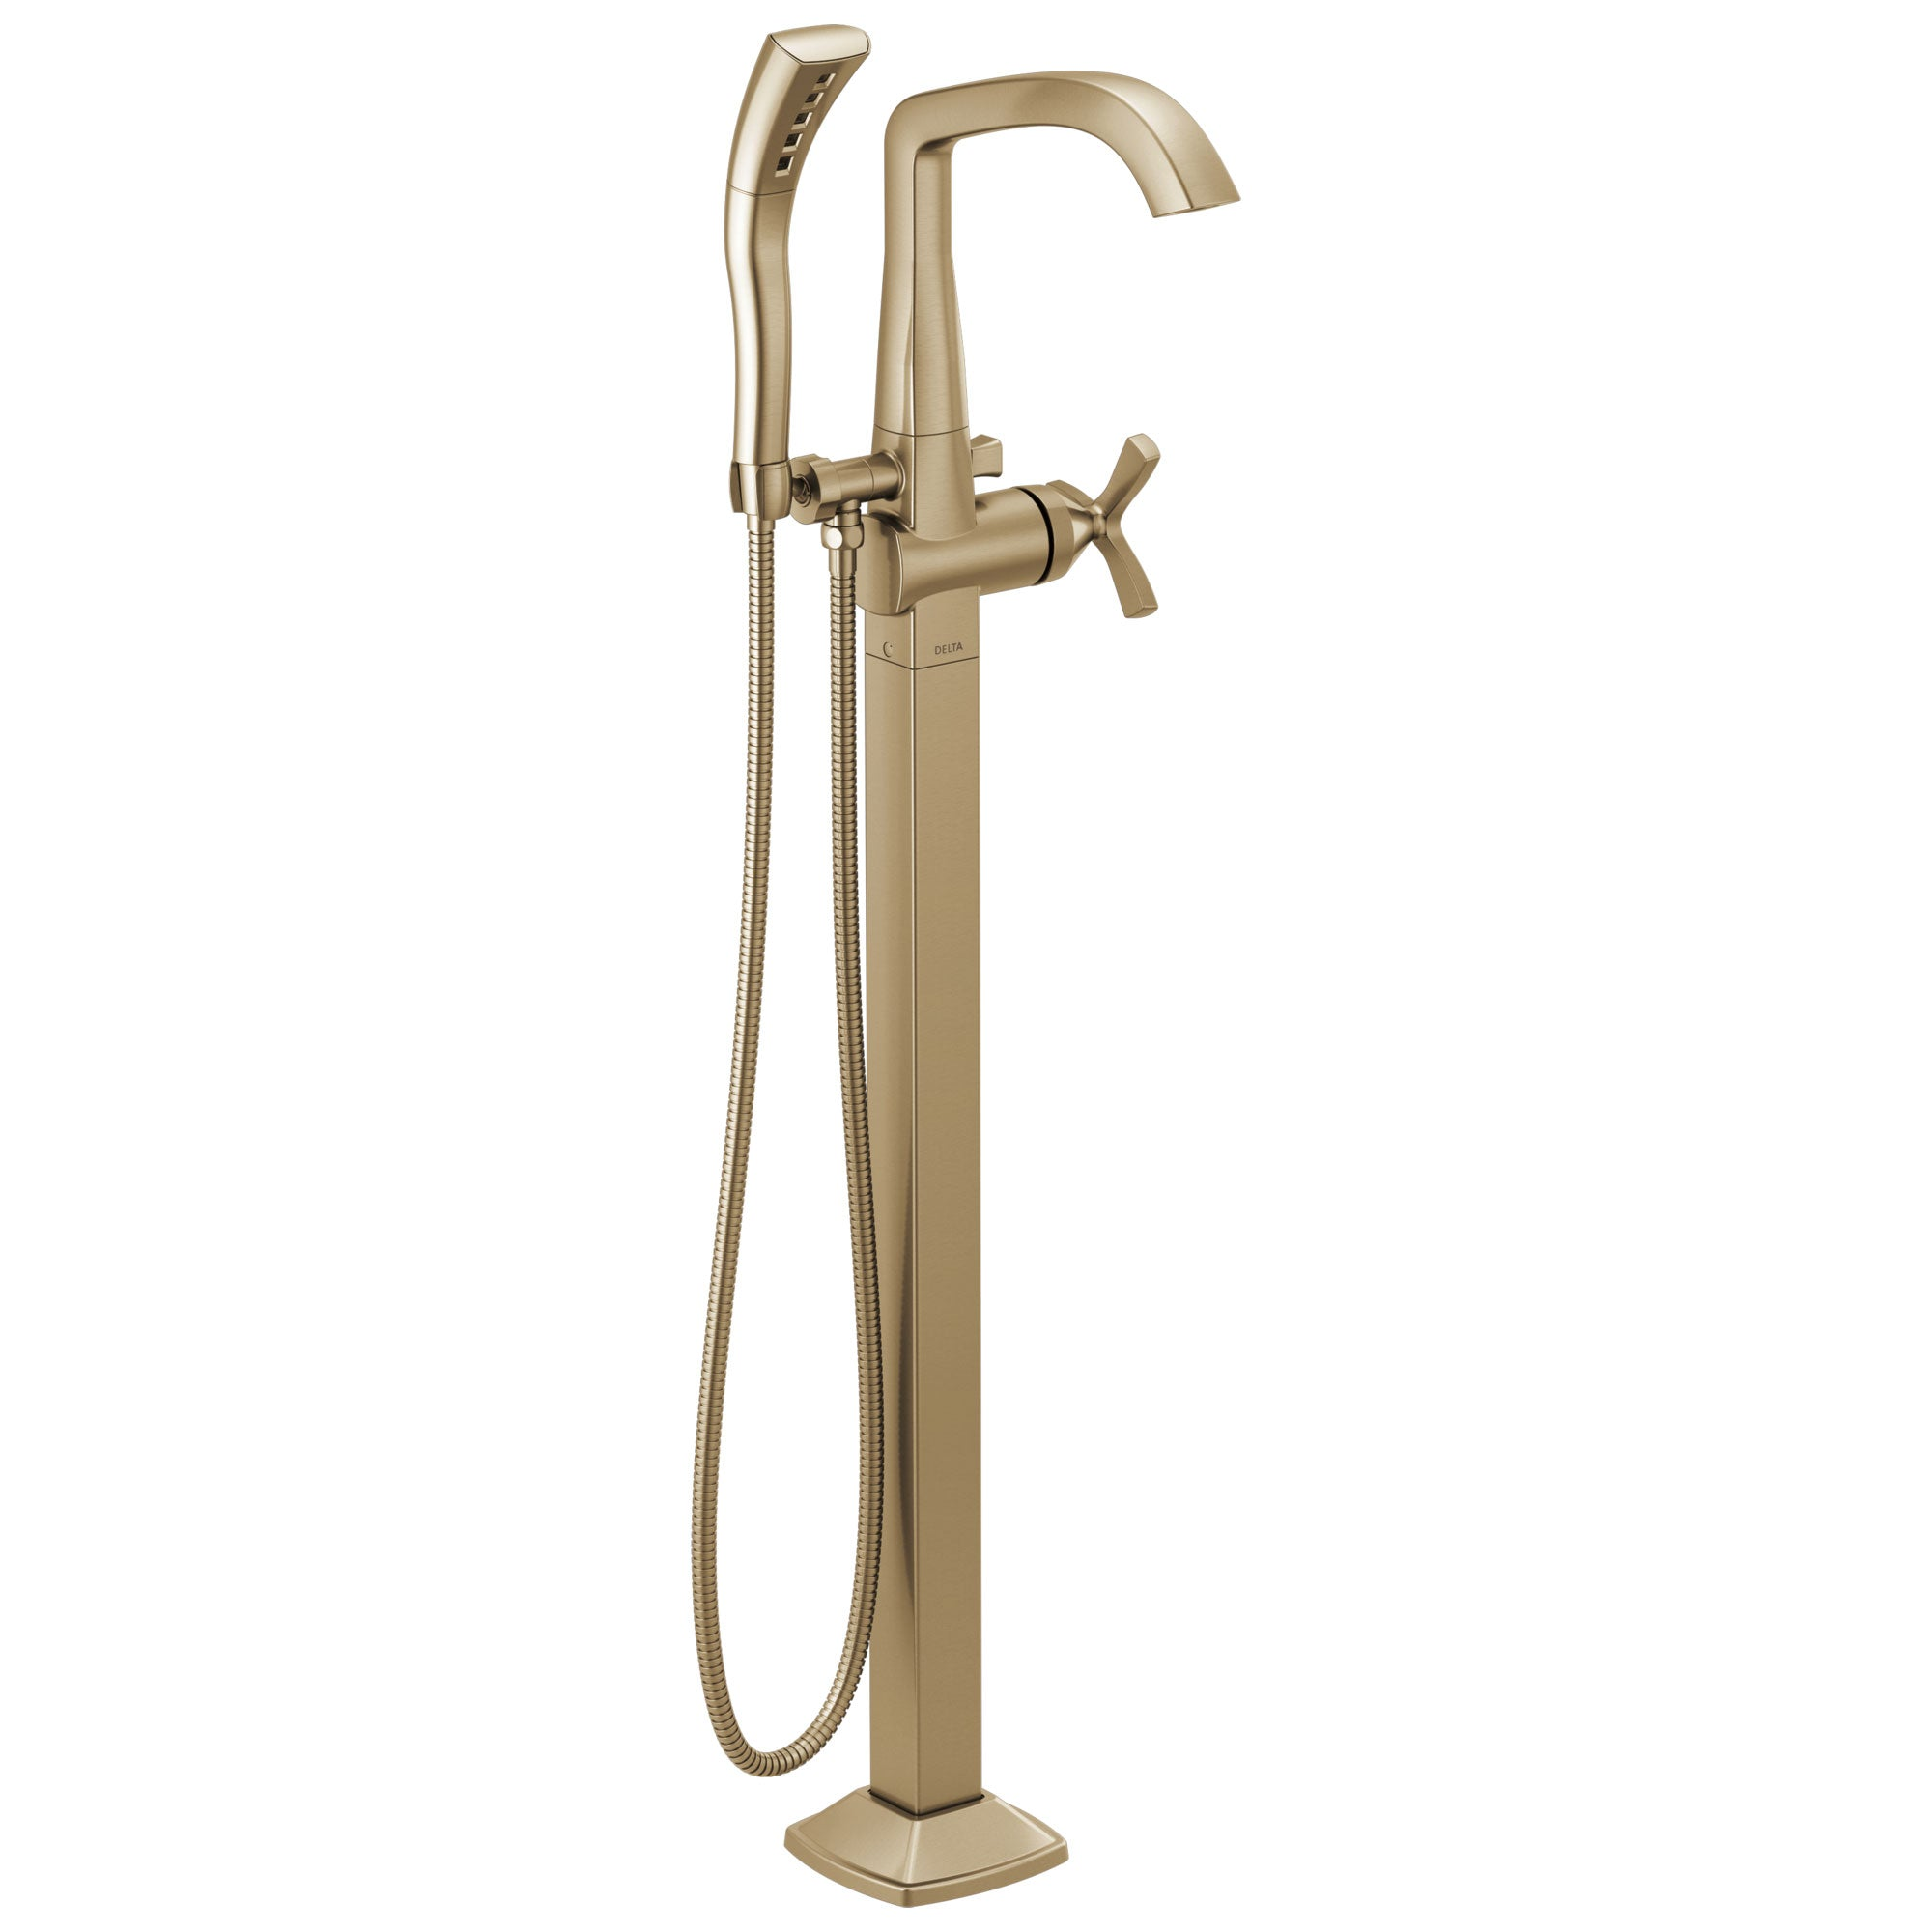 Delta Stryke Champagne Bronze Finish Single Helo Cross Handle Floor Mount Tub Filler Faucet with Hand Sprayer Includes Rough-in Valve D3045V